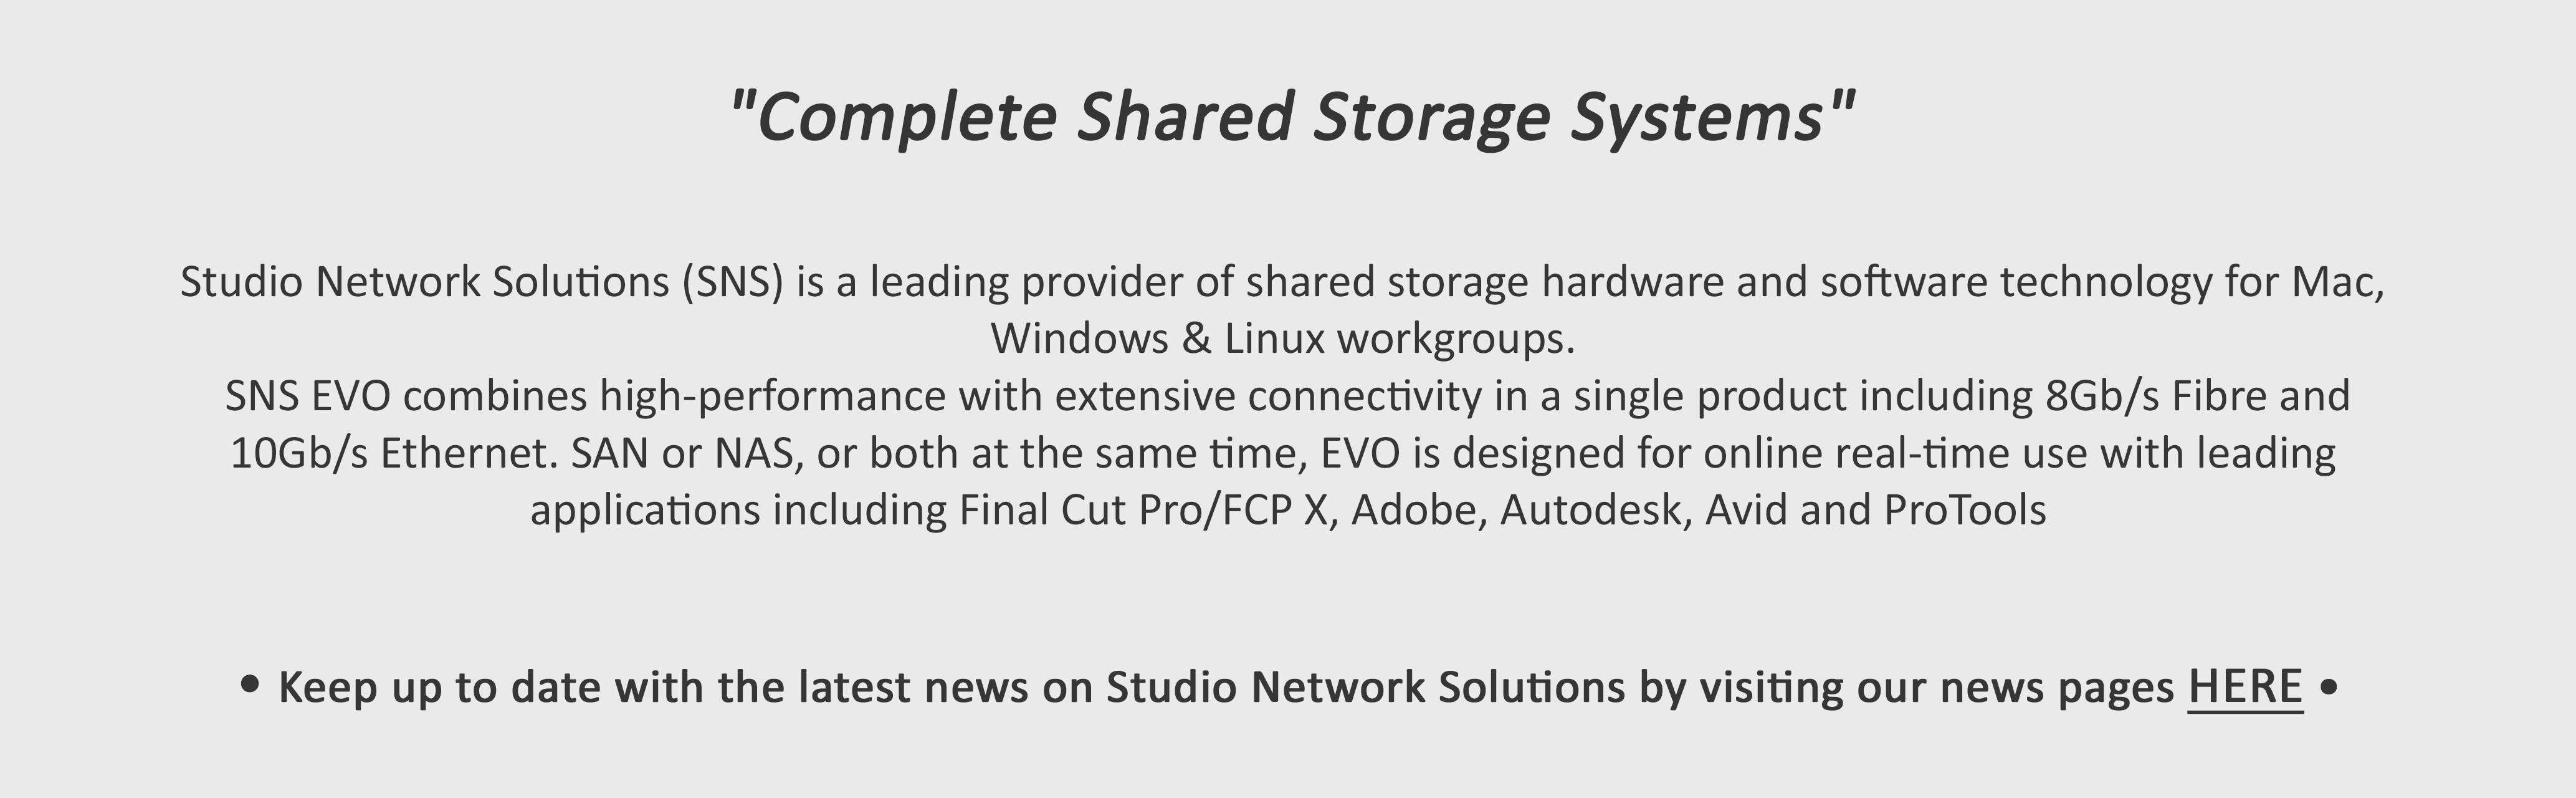 Studio Network Solutions_Shared Storage Solutions_Intro